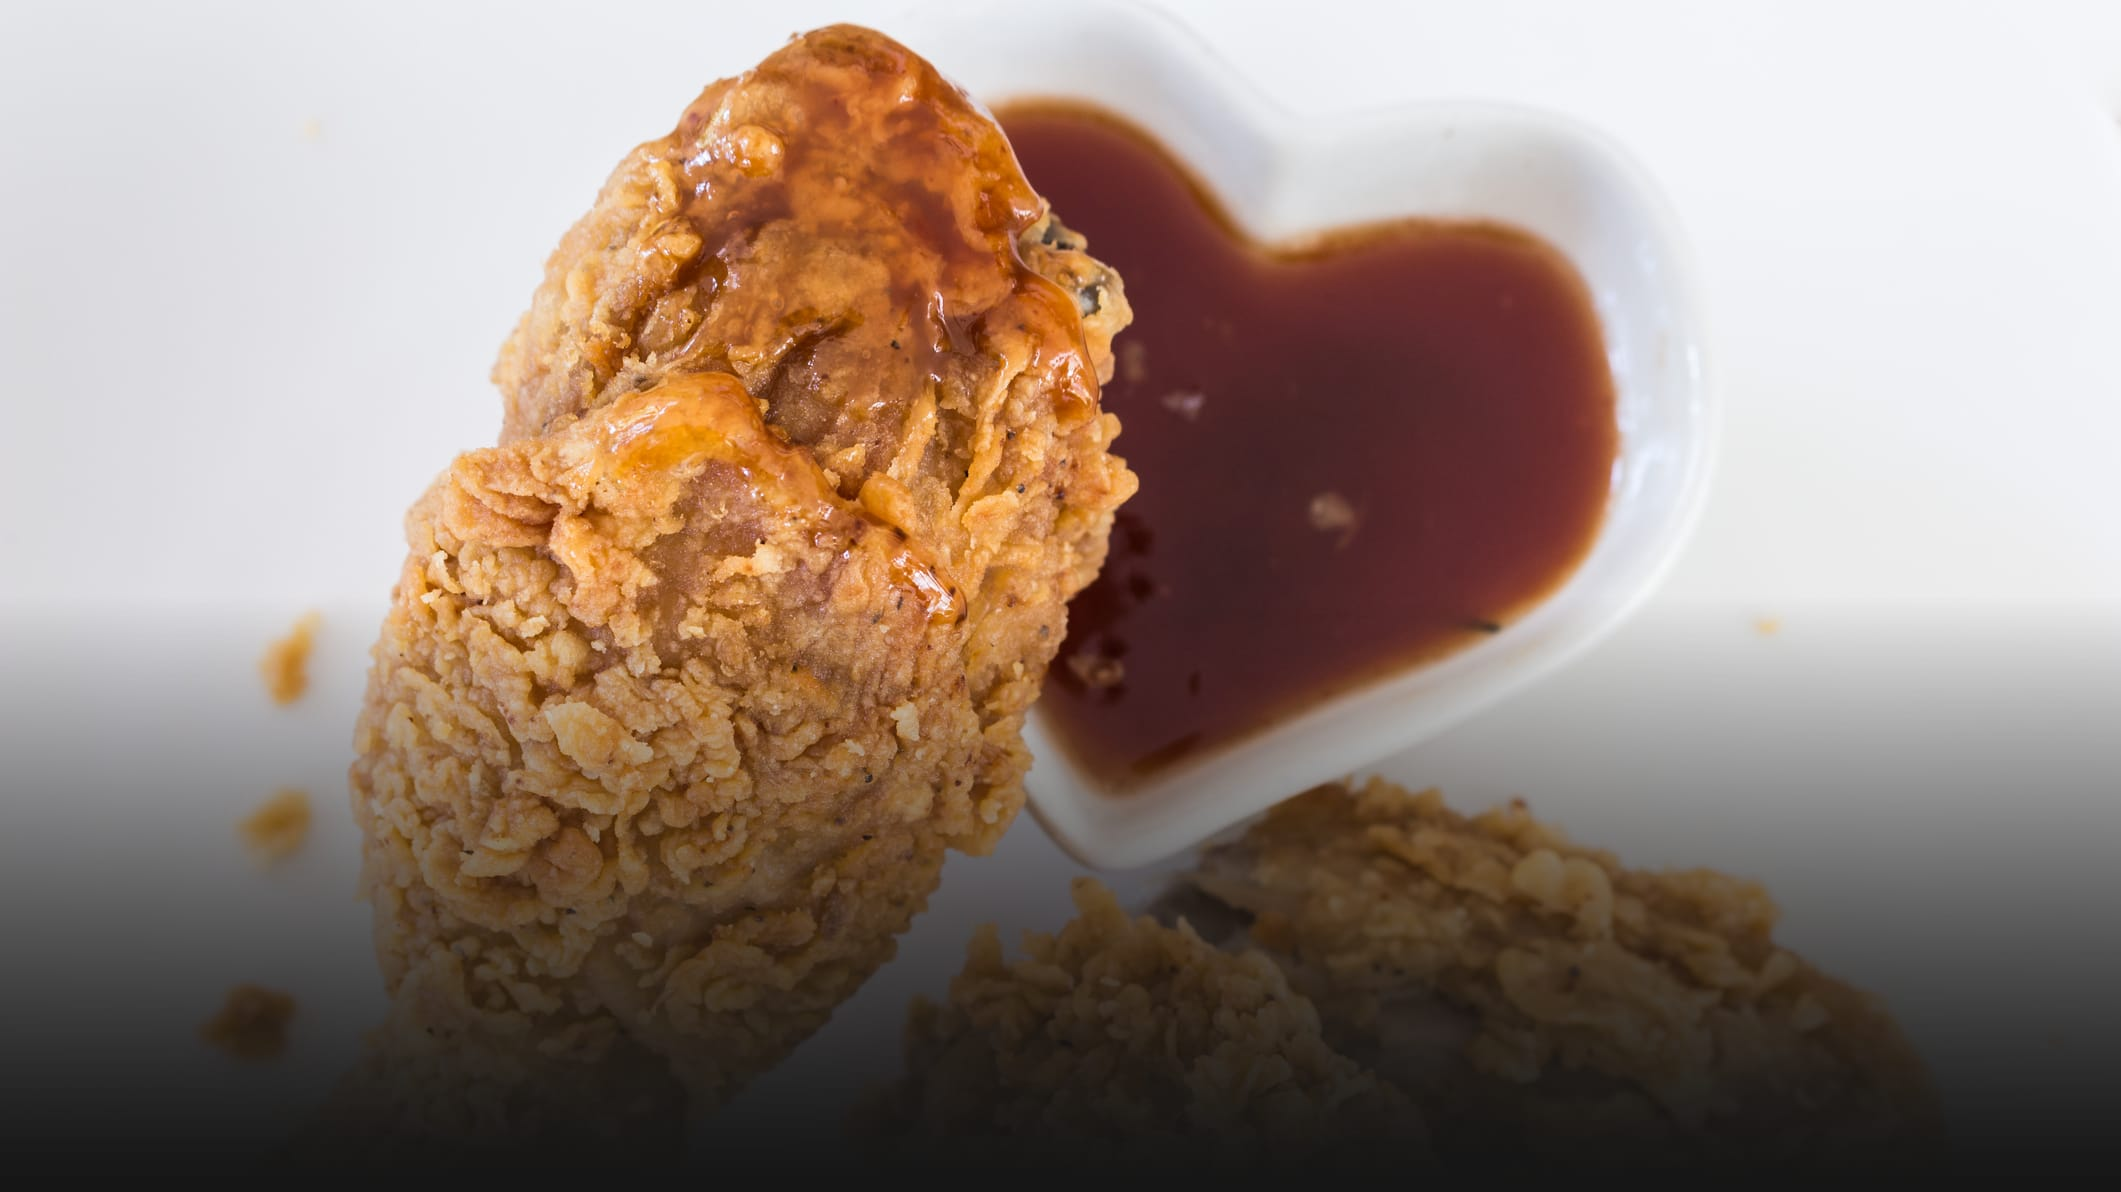 Want to elevate your fried chicken? Dip it in hot honey.